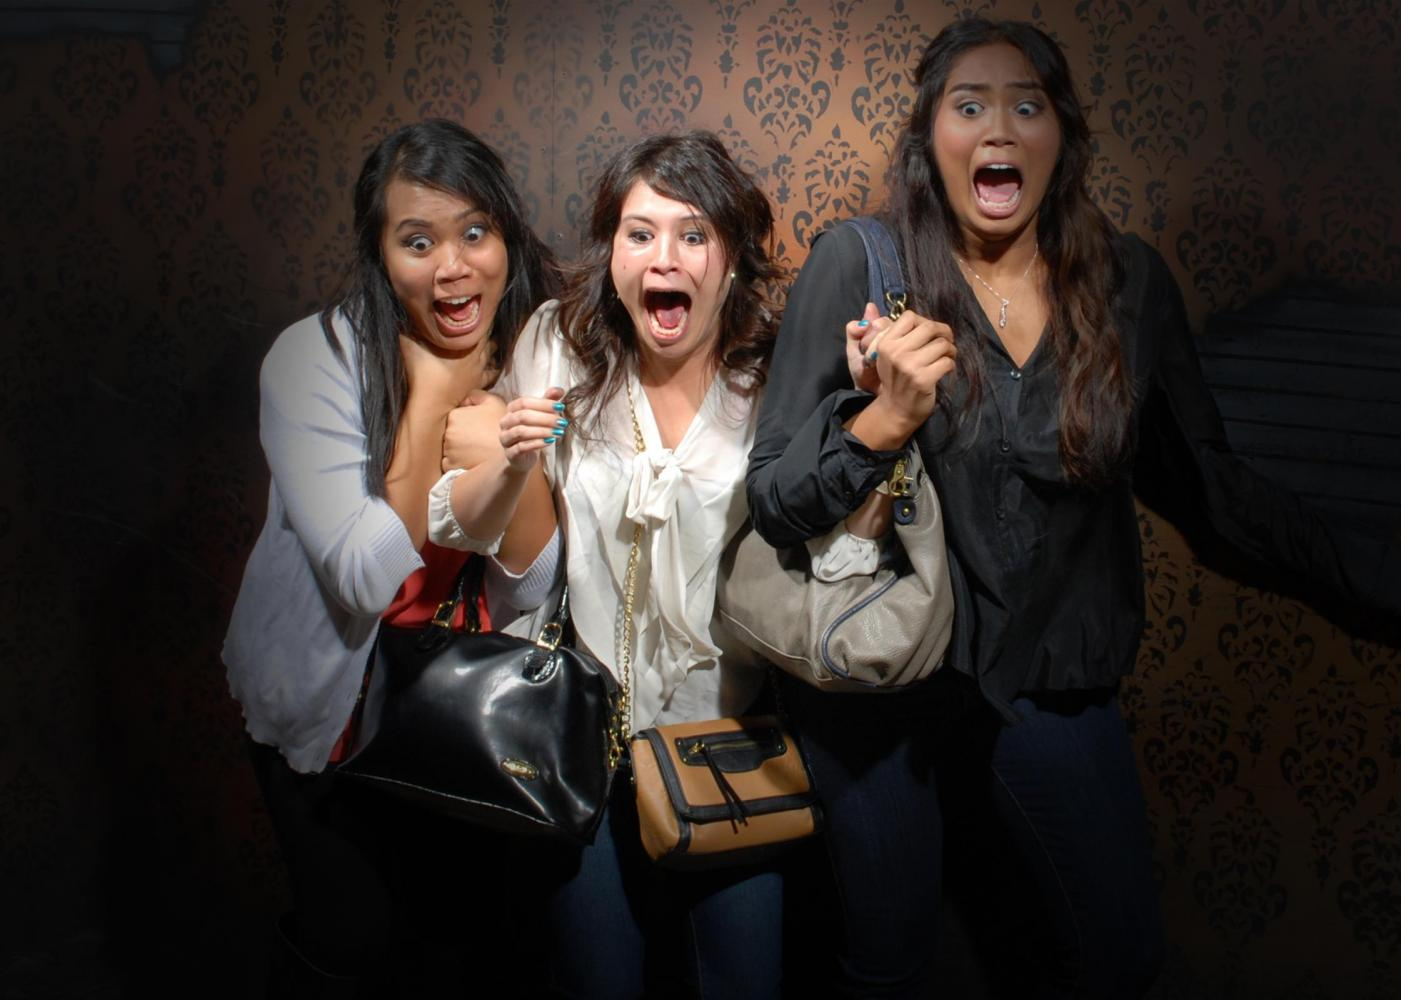 nightmares fear factory ending relationship